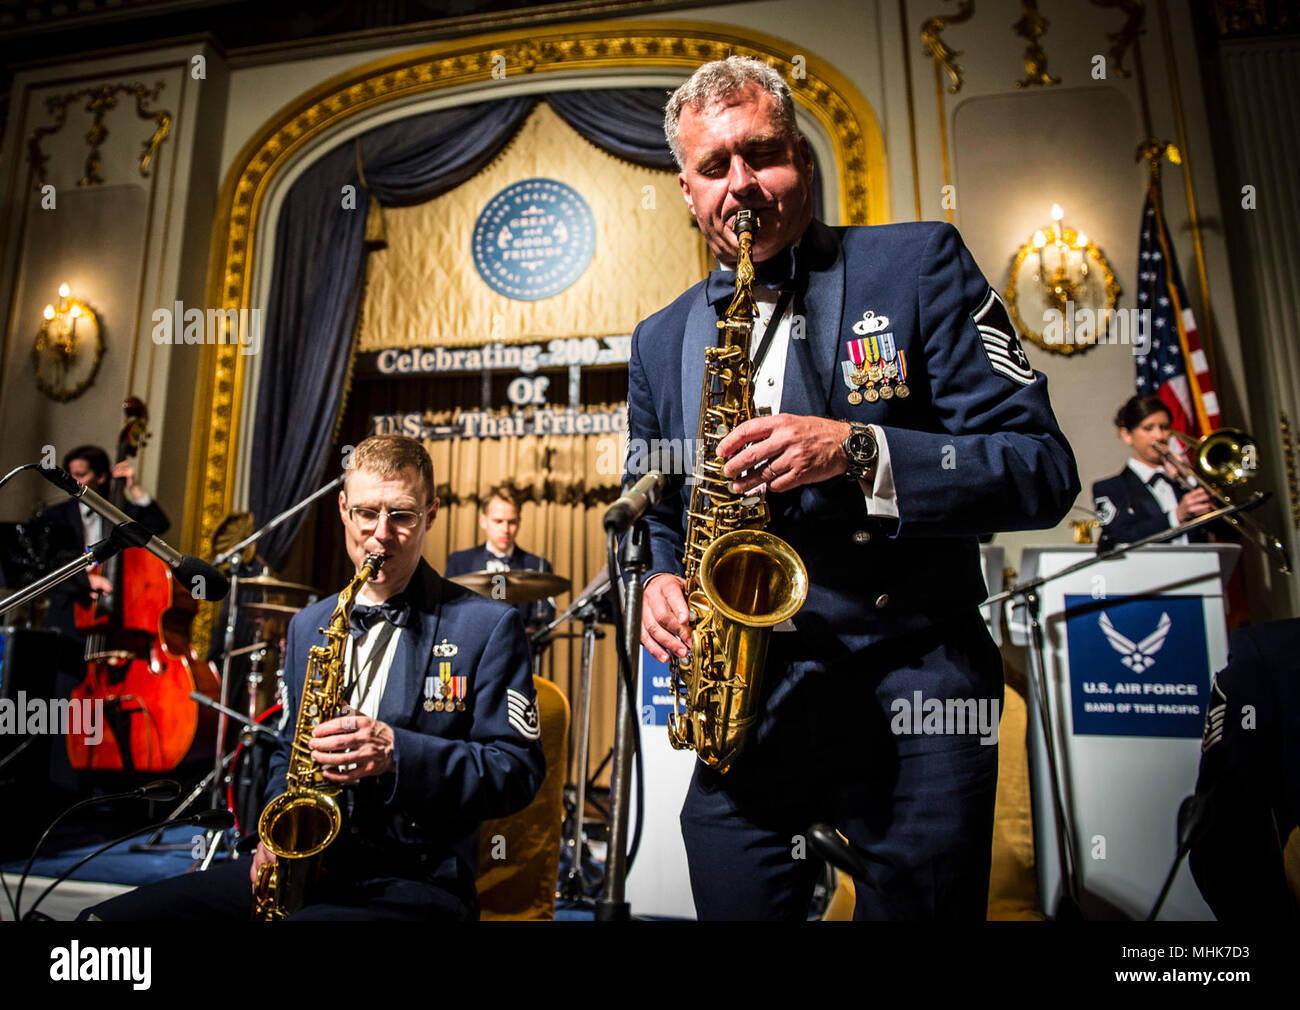 BANGKOK, THAILAND (Mar. 23, 2018) Master Sergeant James Butler, a regional saxophonist assigned to the U.S. Air Force Band of the Pacific, performs at a gala at the Mandarin Oriental Hotel in Bangkok, Thailand. The band is in Thailand as part of the U.S. Embassy's 200th Anniversary Celebration of Friendship between the U.S. and Kingdom of Thailand. (U.S. Air Force - Stock Image